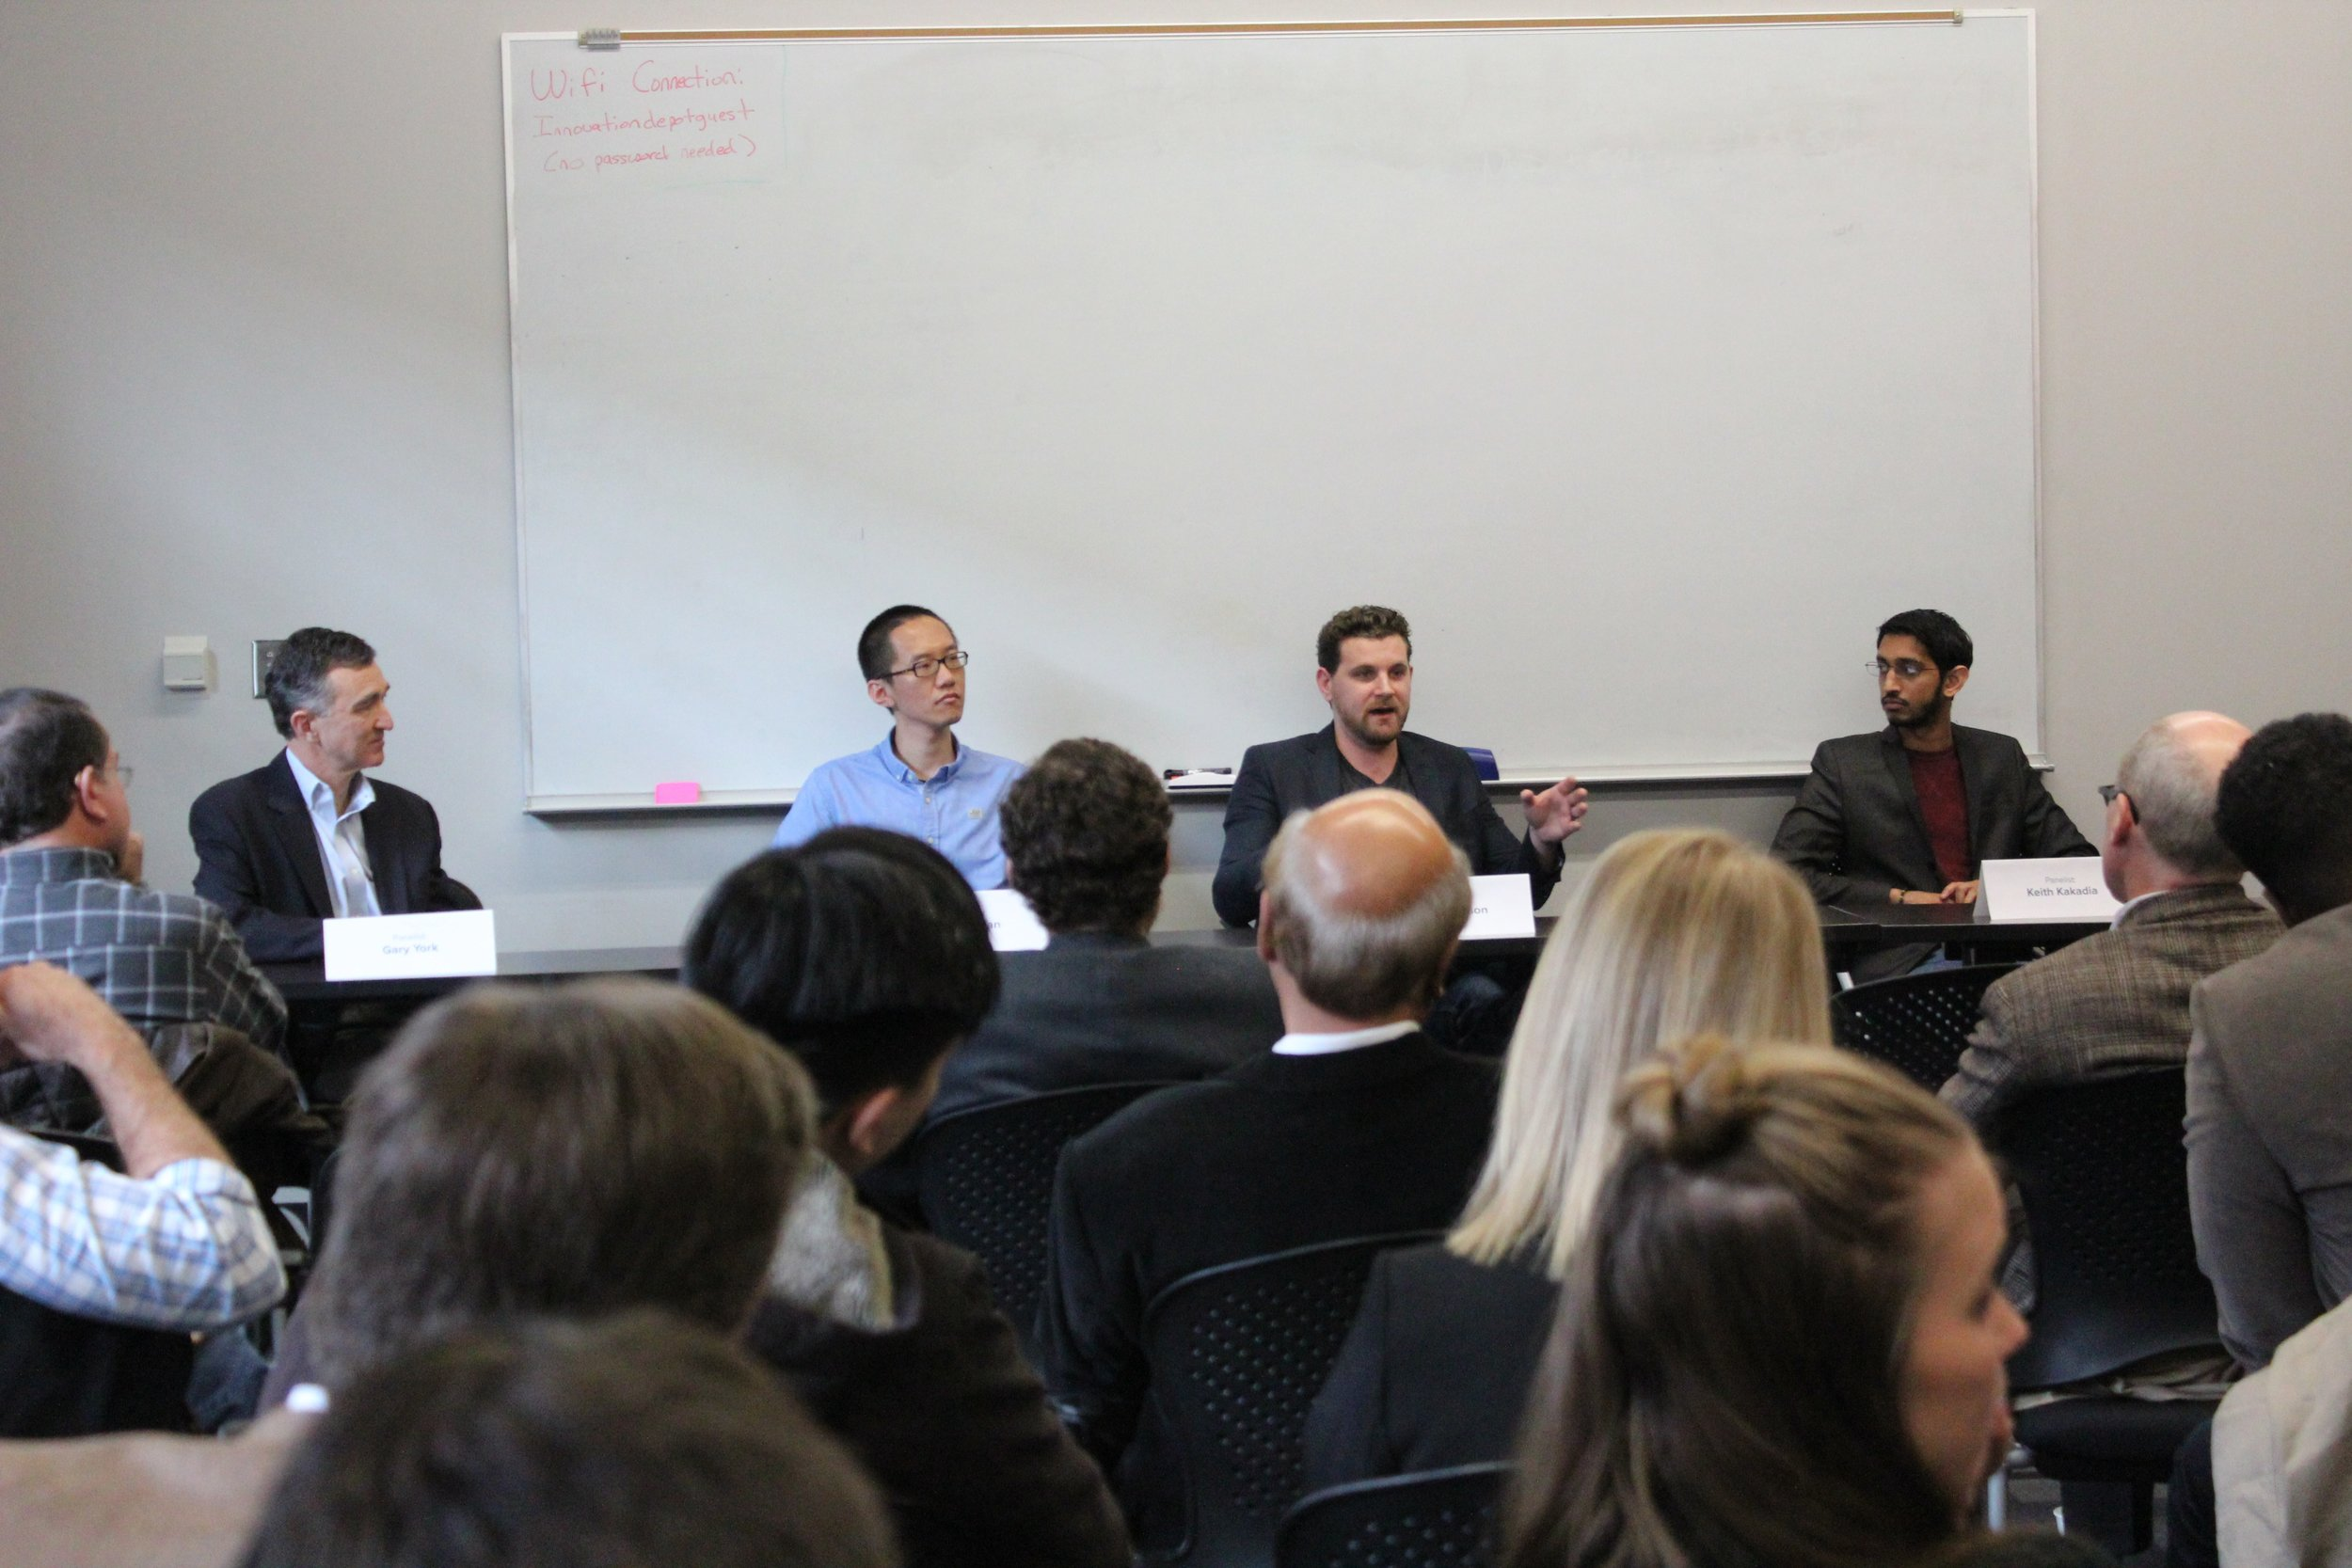 From left, Gary York, CEO of Help Lightning; Weida Tan, founder and CEO of Fledging; Ross Wesson, founder and CEO of Deft Dynamics; and Keith Kakadia, CEO of Socially.In, spoke to a standing room only crowd at the most recent Investors Roundtable.